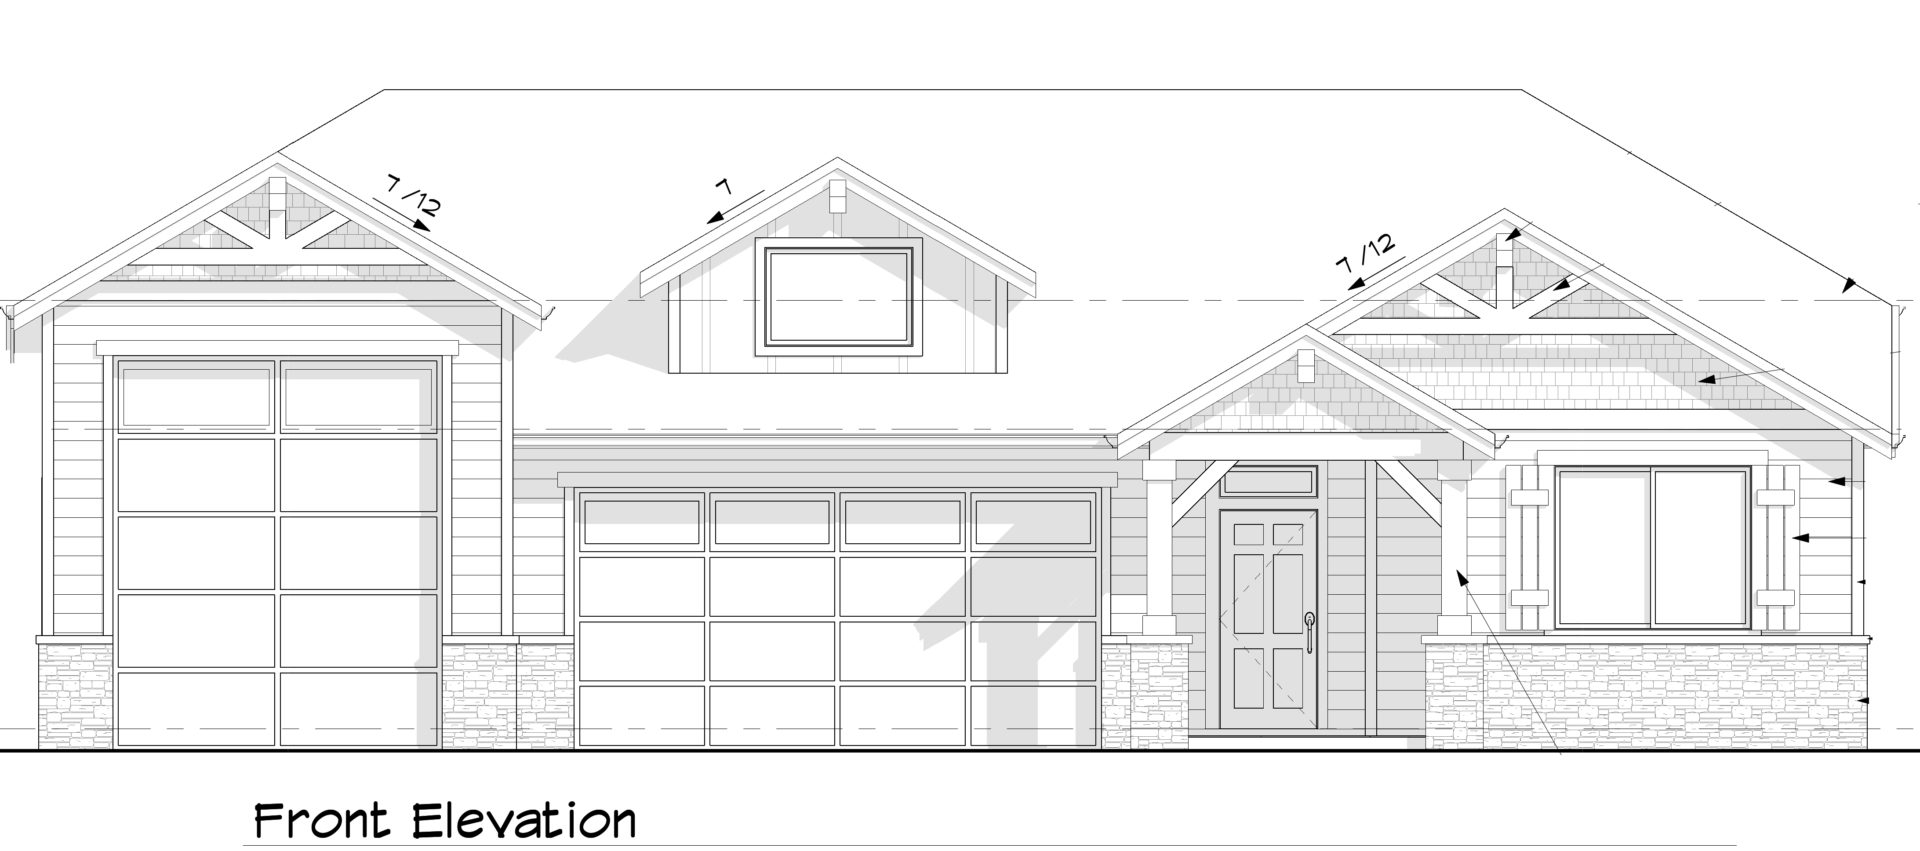 Sahalie plan exterior elevation